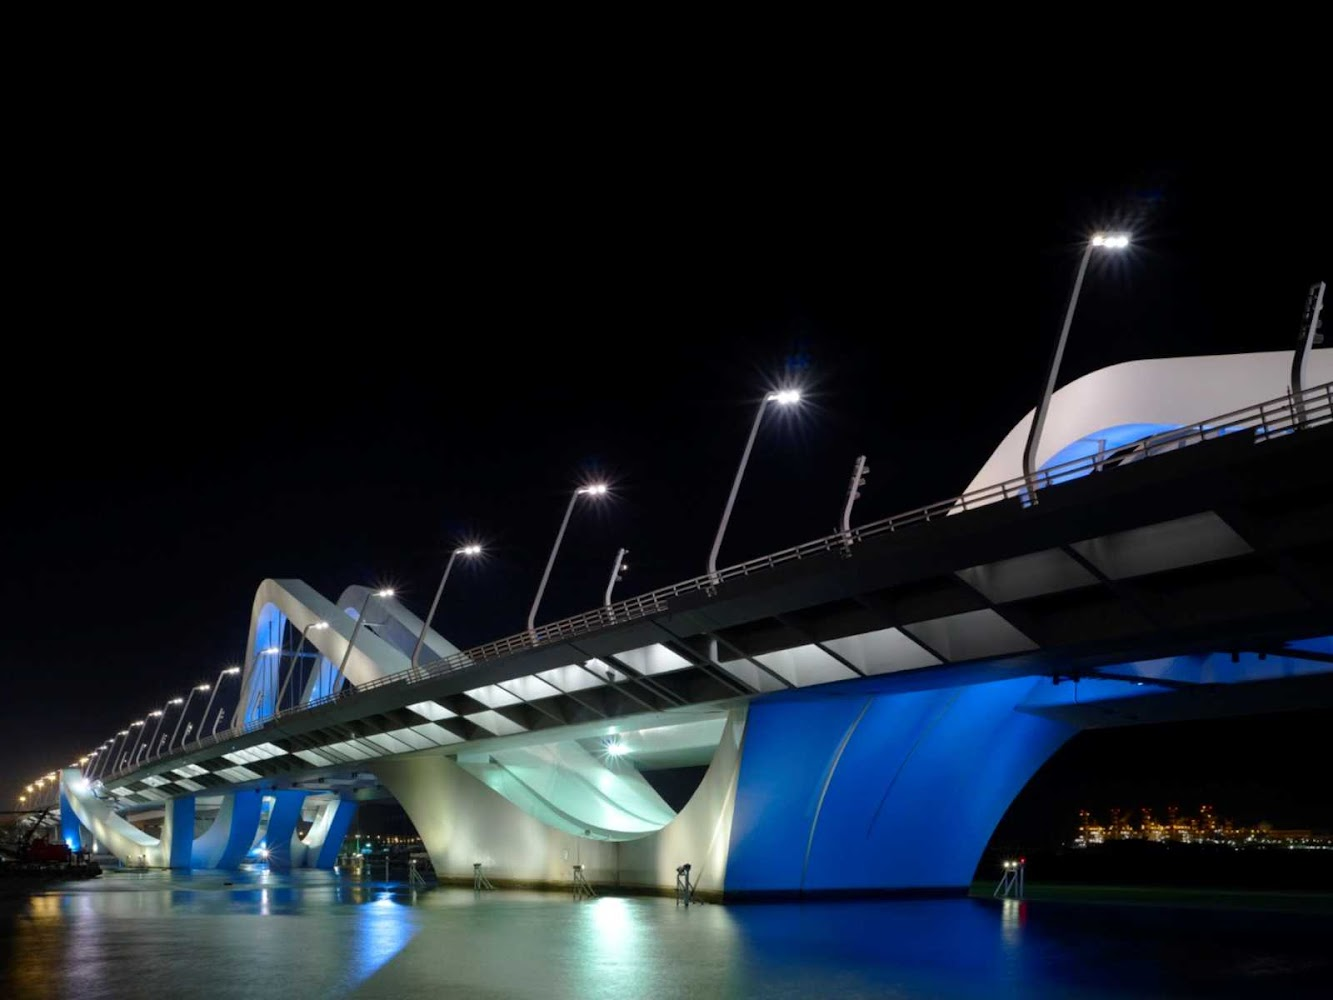 Abu Dhabi - Emirati Arabi Uniti: Sheikh Zayed Bridge by Zaha Hadid Architects